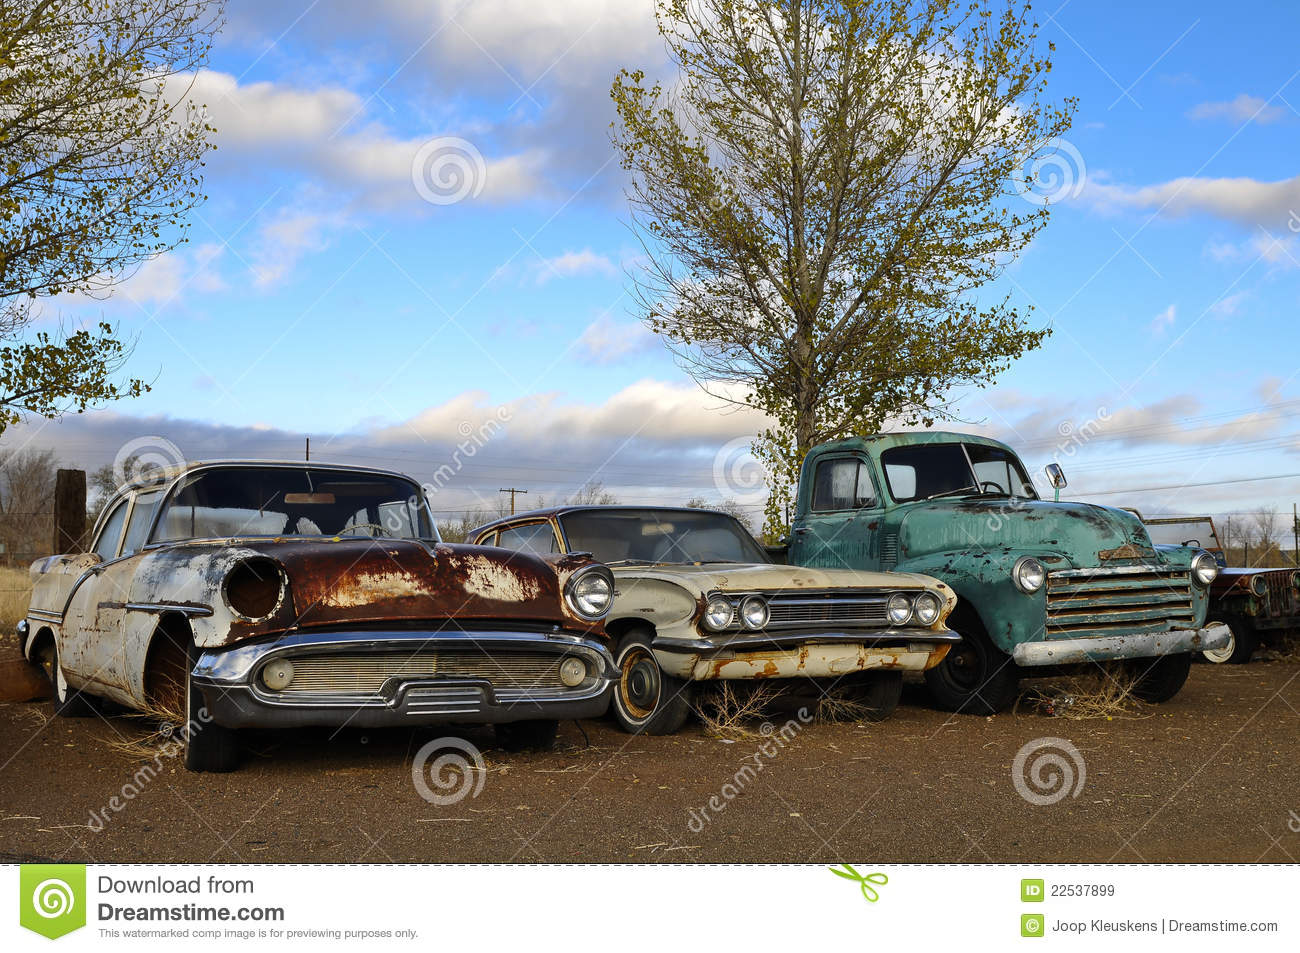 Rusty old classic cars stock image. Image of colorful - 22537899